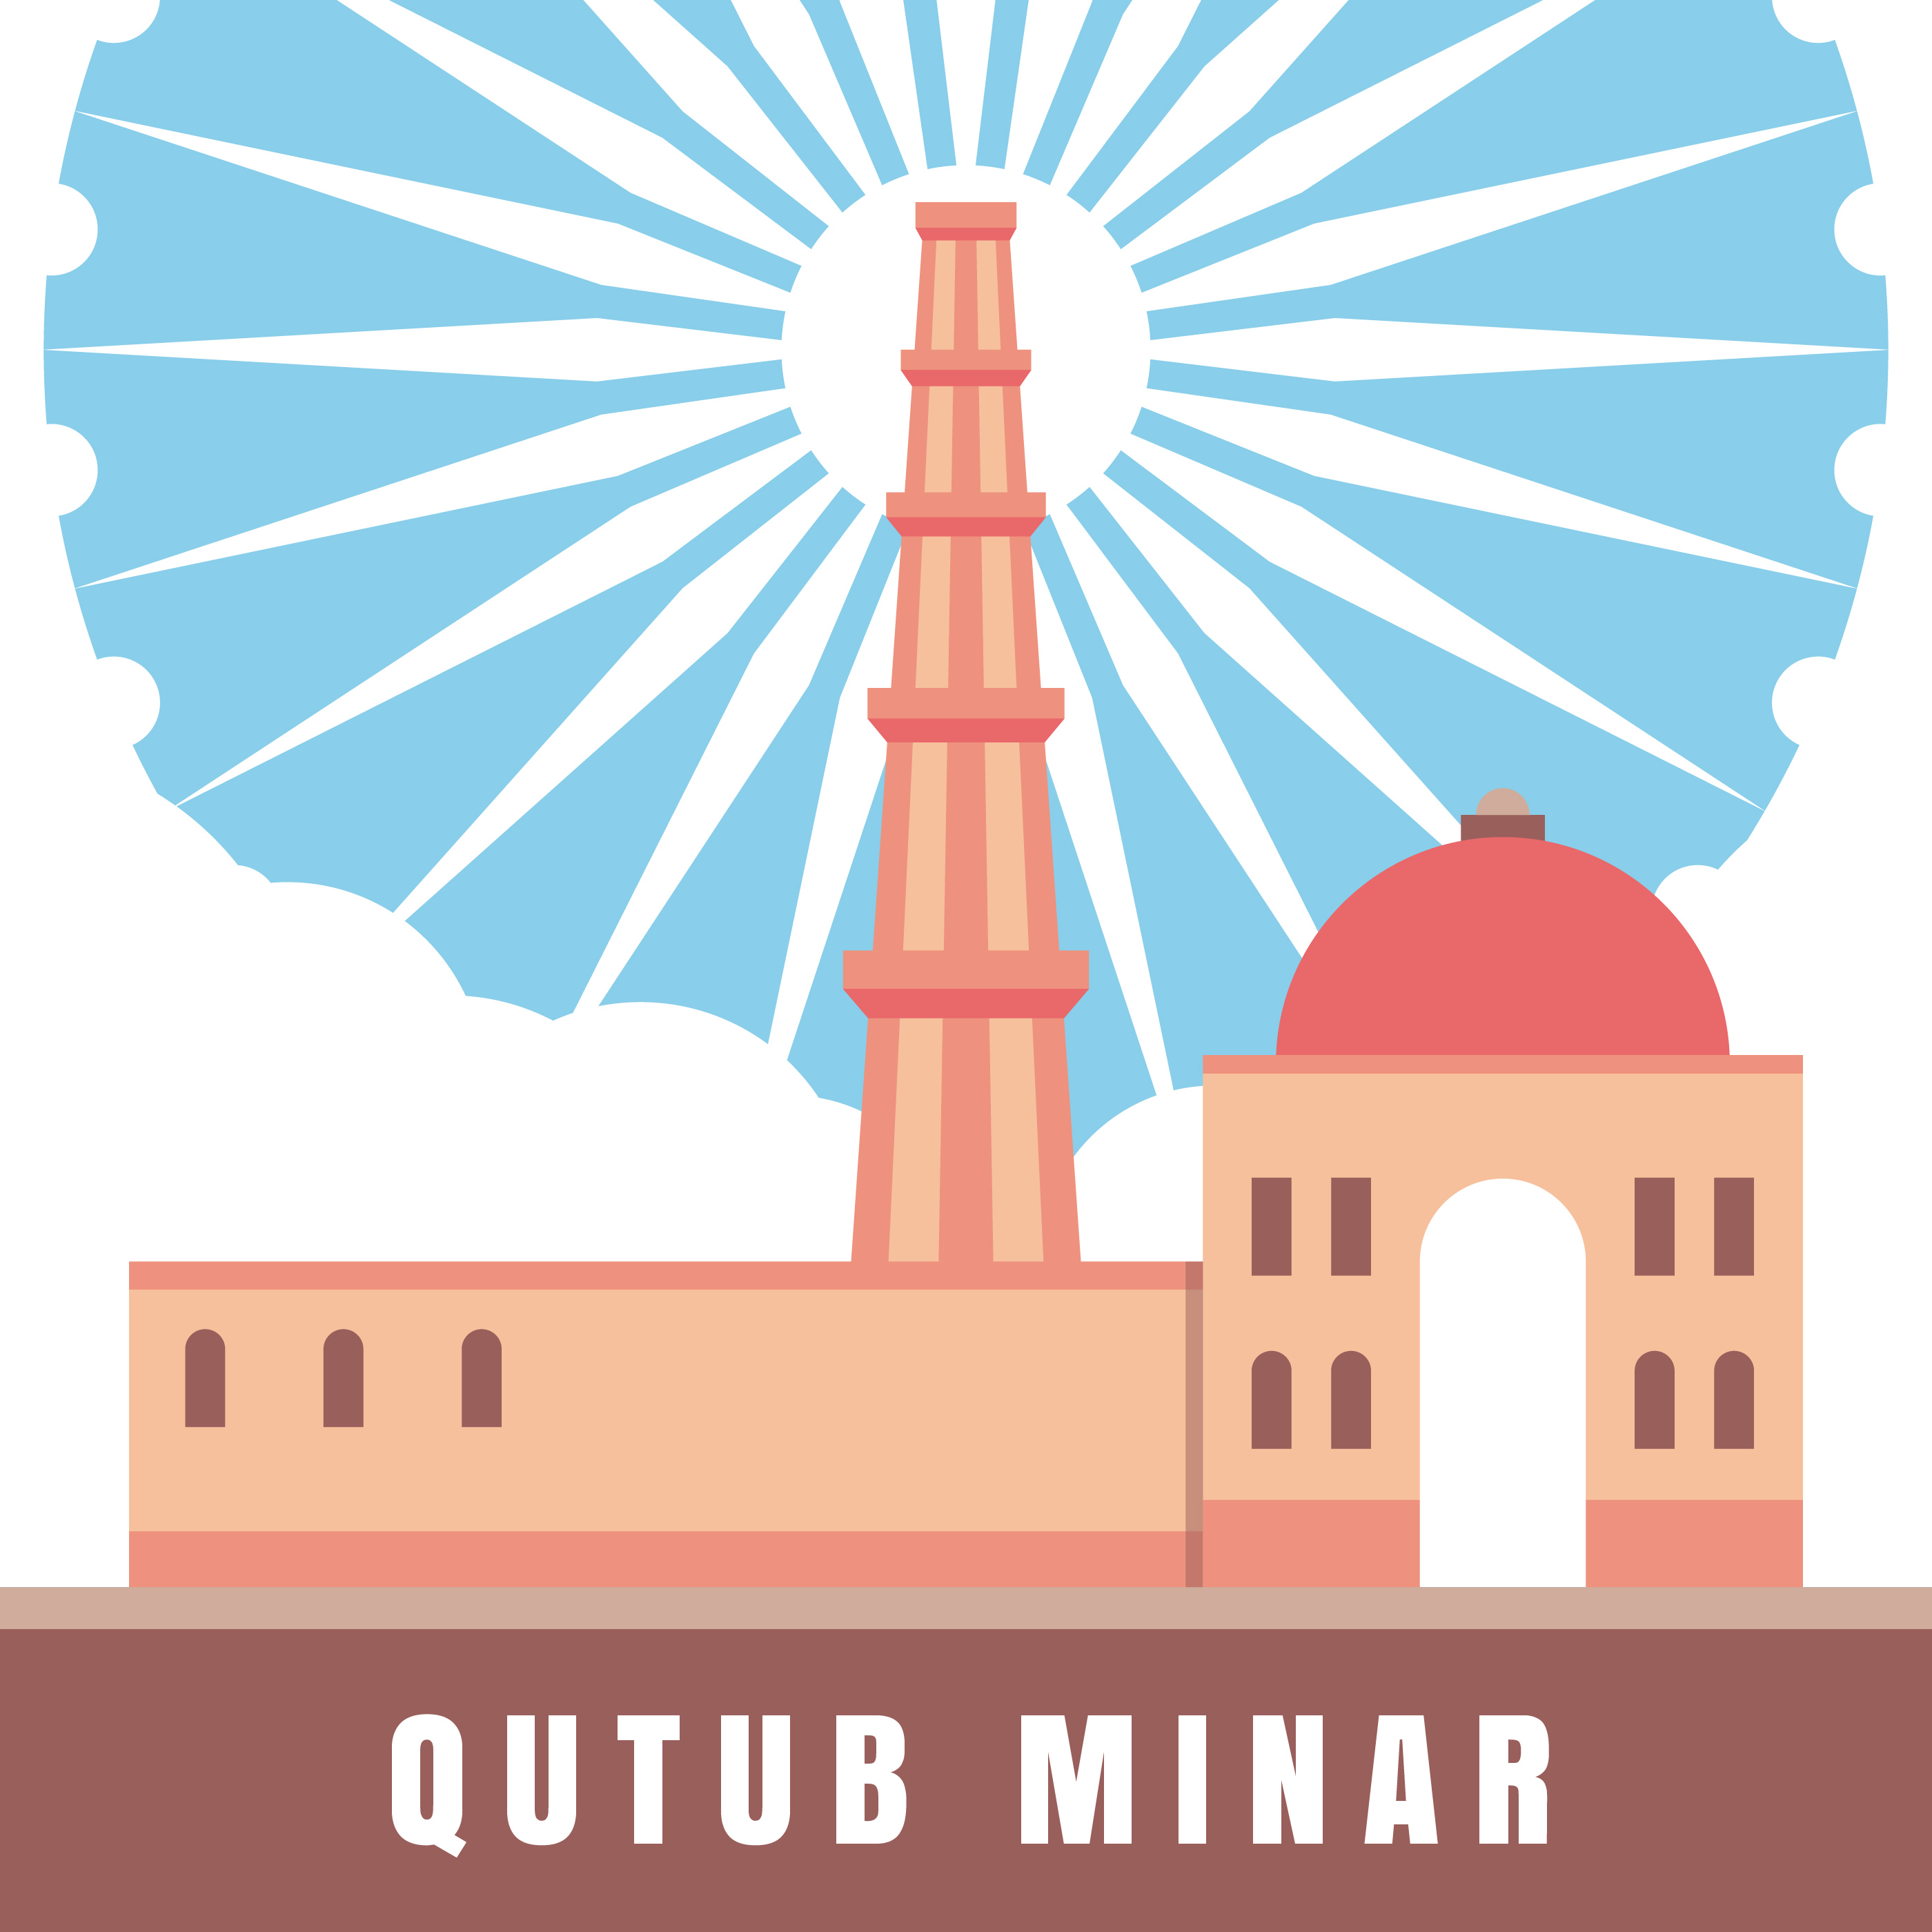 Line Drawing Of Qutub Minar : Indian architecture qutub minar illustration download